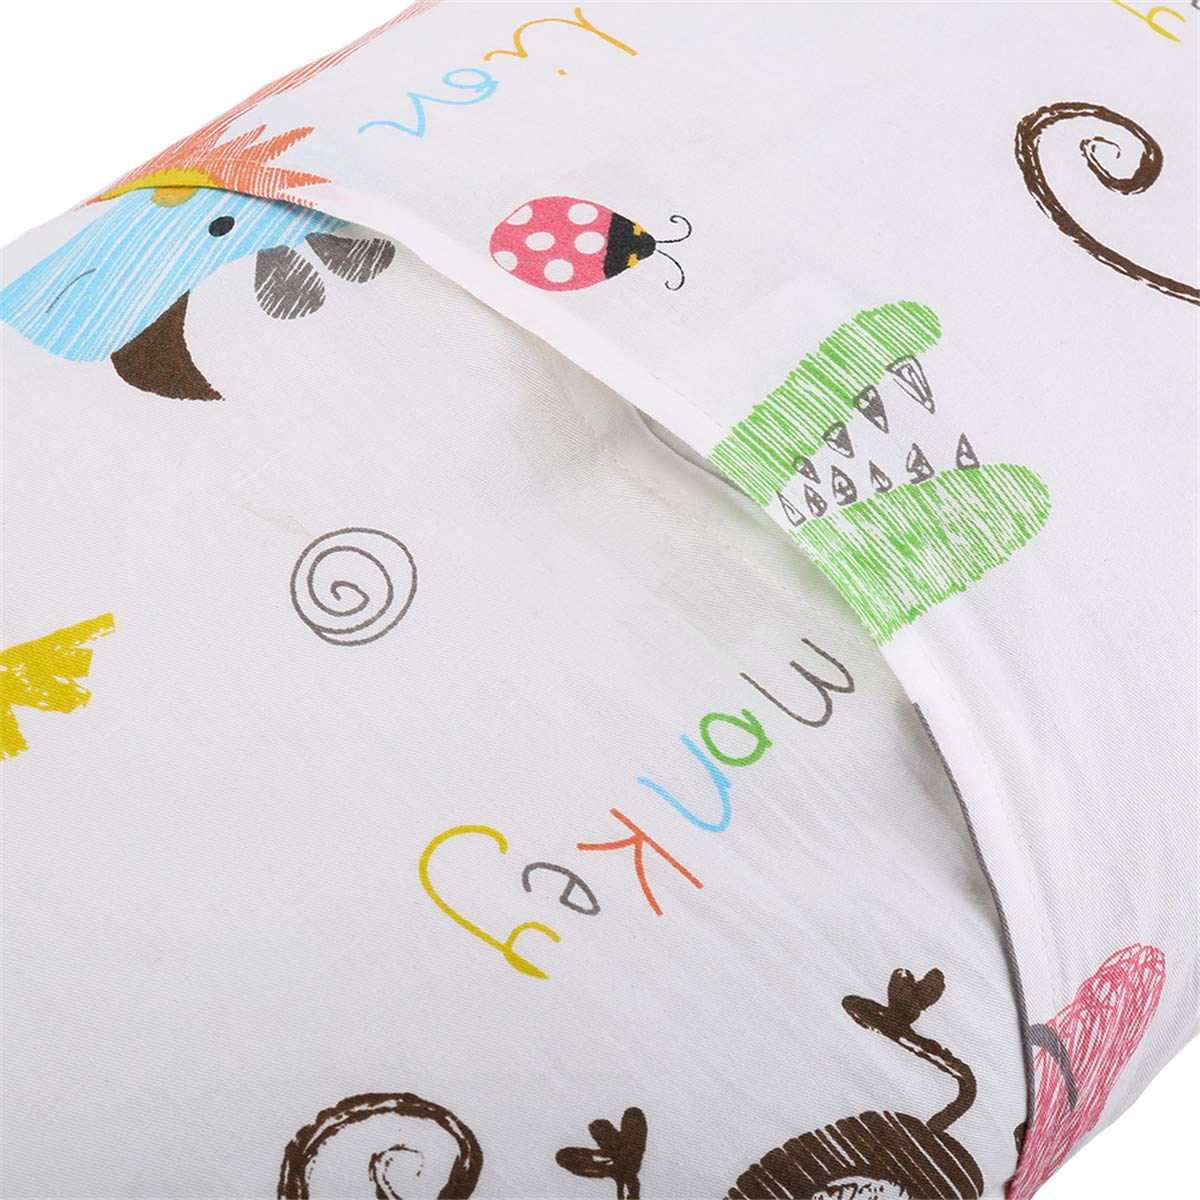 UOMNY Kids Toddler Pillowcases 1 Pack 100/% Cotton Pillow Cover Pillowslip Case Fits Pillows sizesd 13 x 18 or 12x 16 for Kids Bedding Pillow Cover Baby Pillow Cases Dinosaur Kids Pillowcases